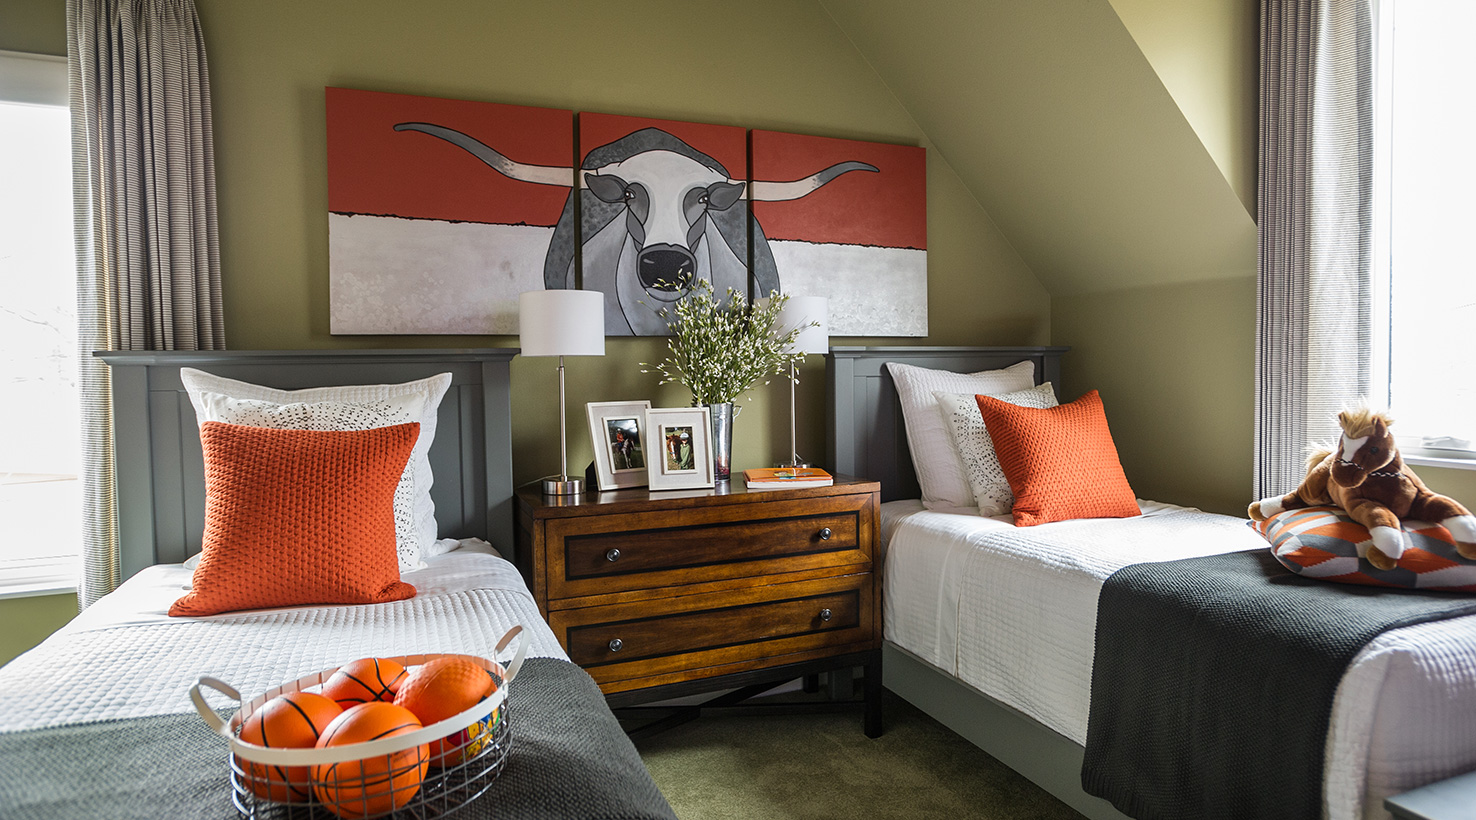 hgtv smart home 2015 paint colors intentionaldesigns com 15545 | sw img hgtvsh15 kids bed